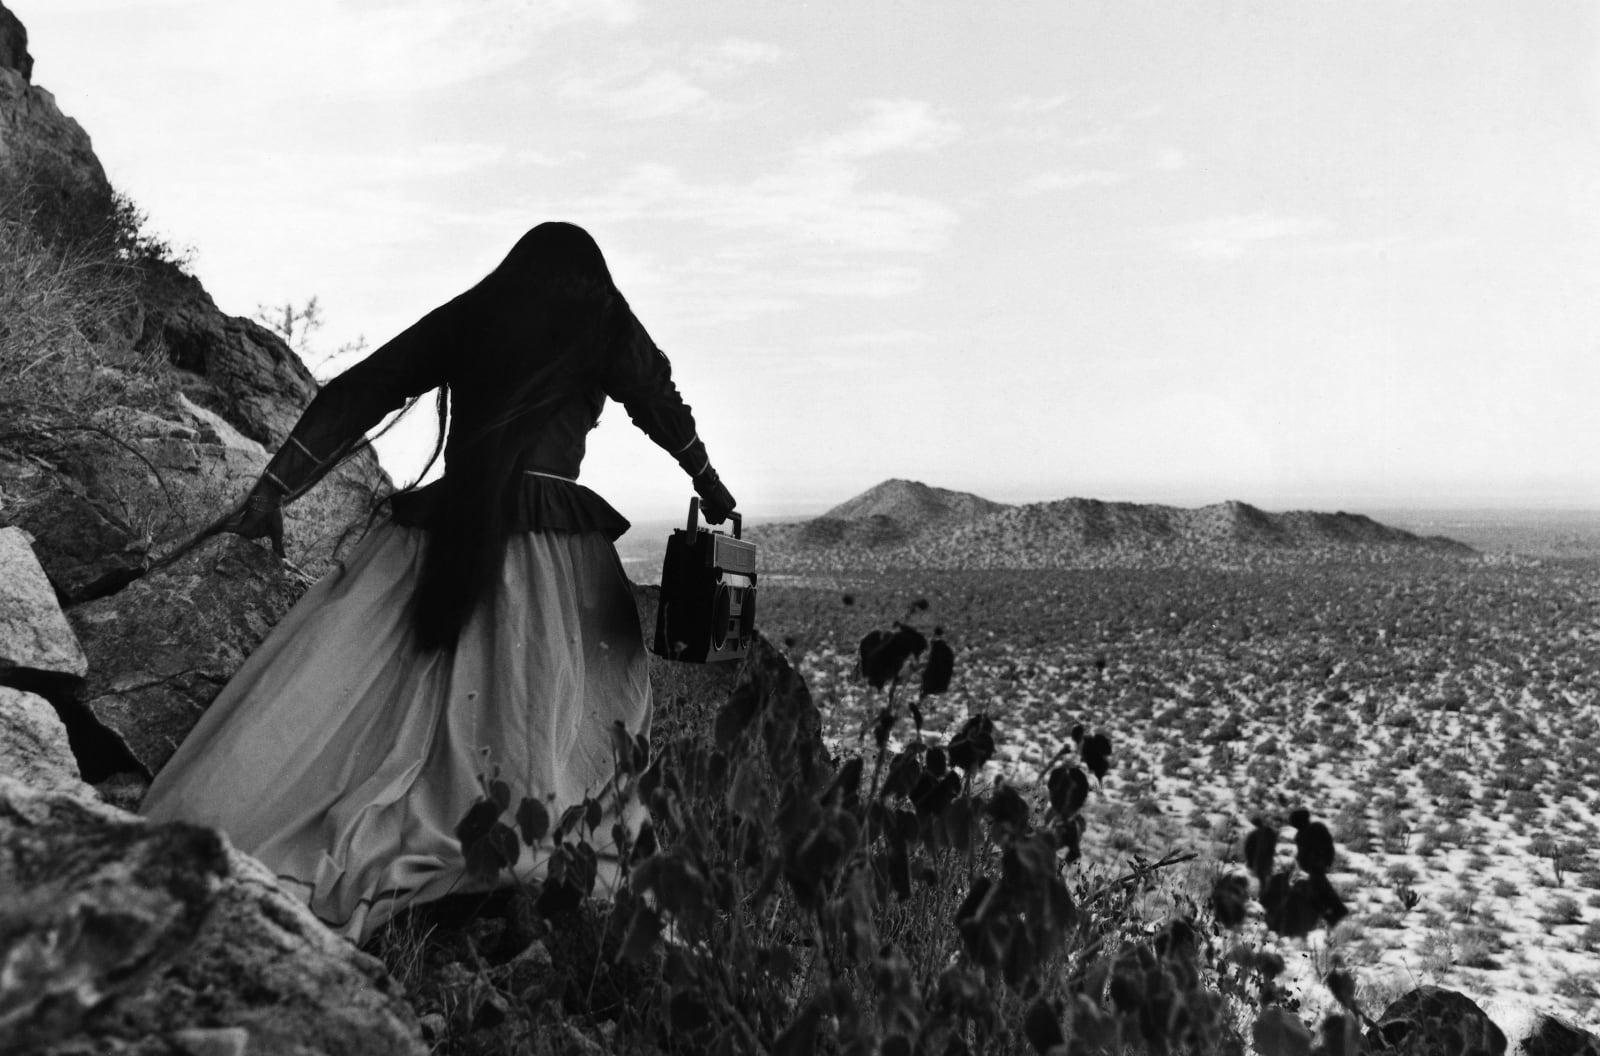 © Graciela Iturbide, Mexico, 2021 Sony World Photography Awards - Mujer Angel, Desierto de Sonora, Mexico, 1979